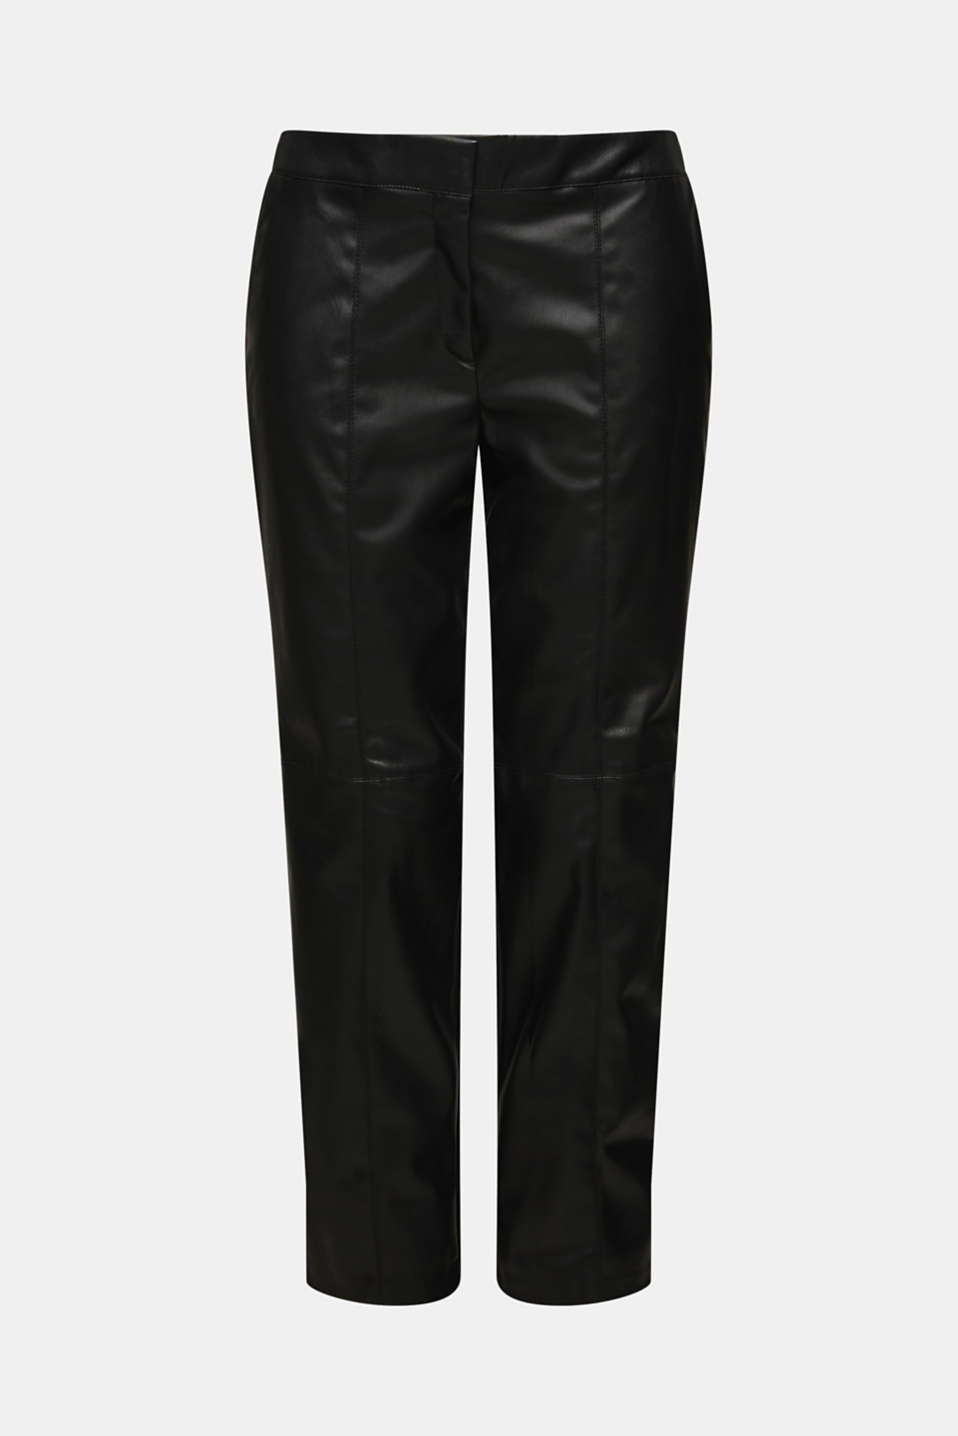 Stretch faux leather trousers, BLACK, detail image number 7